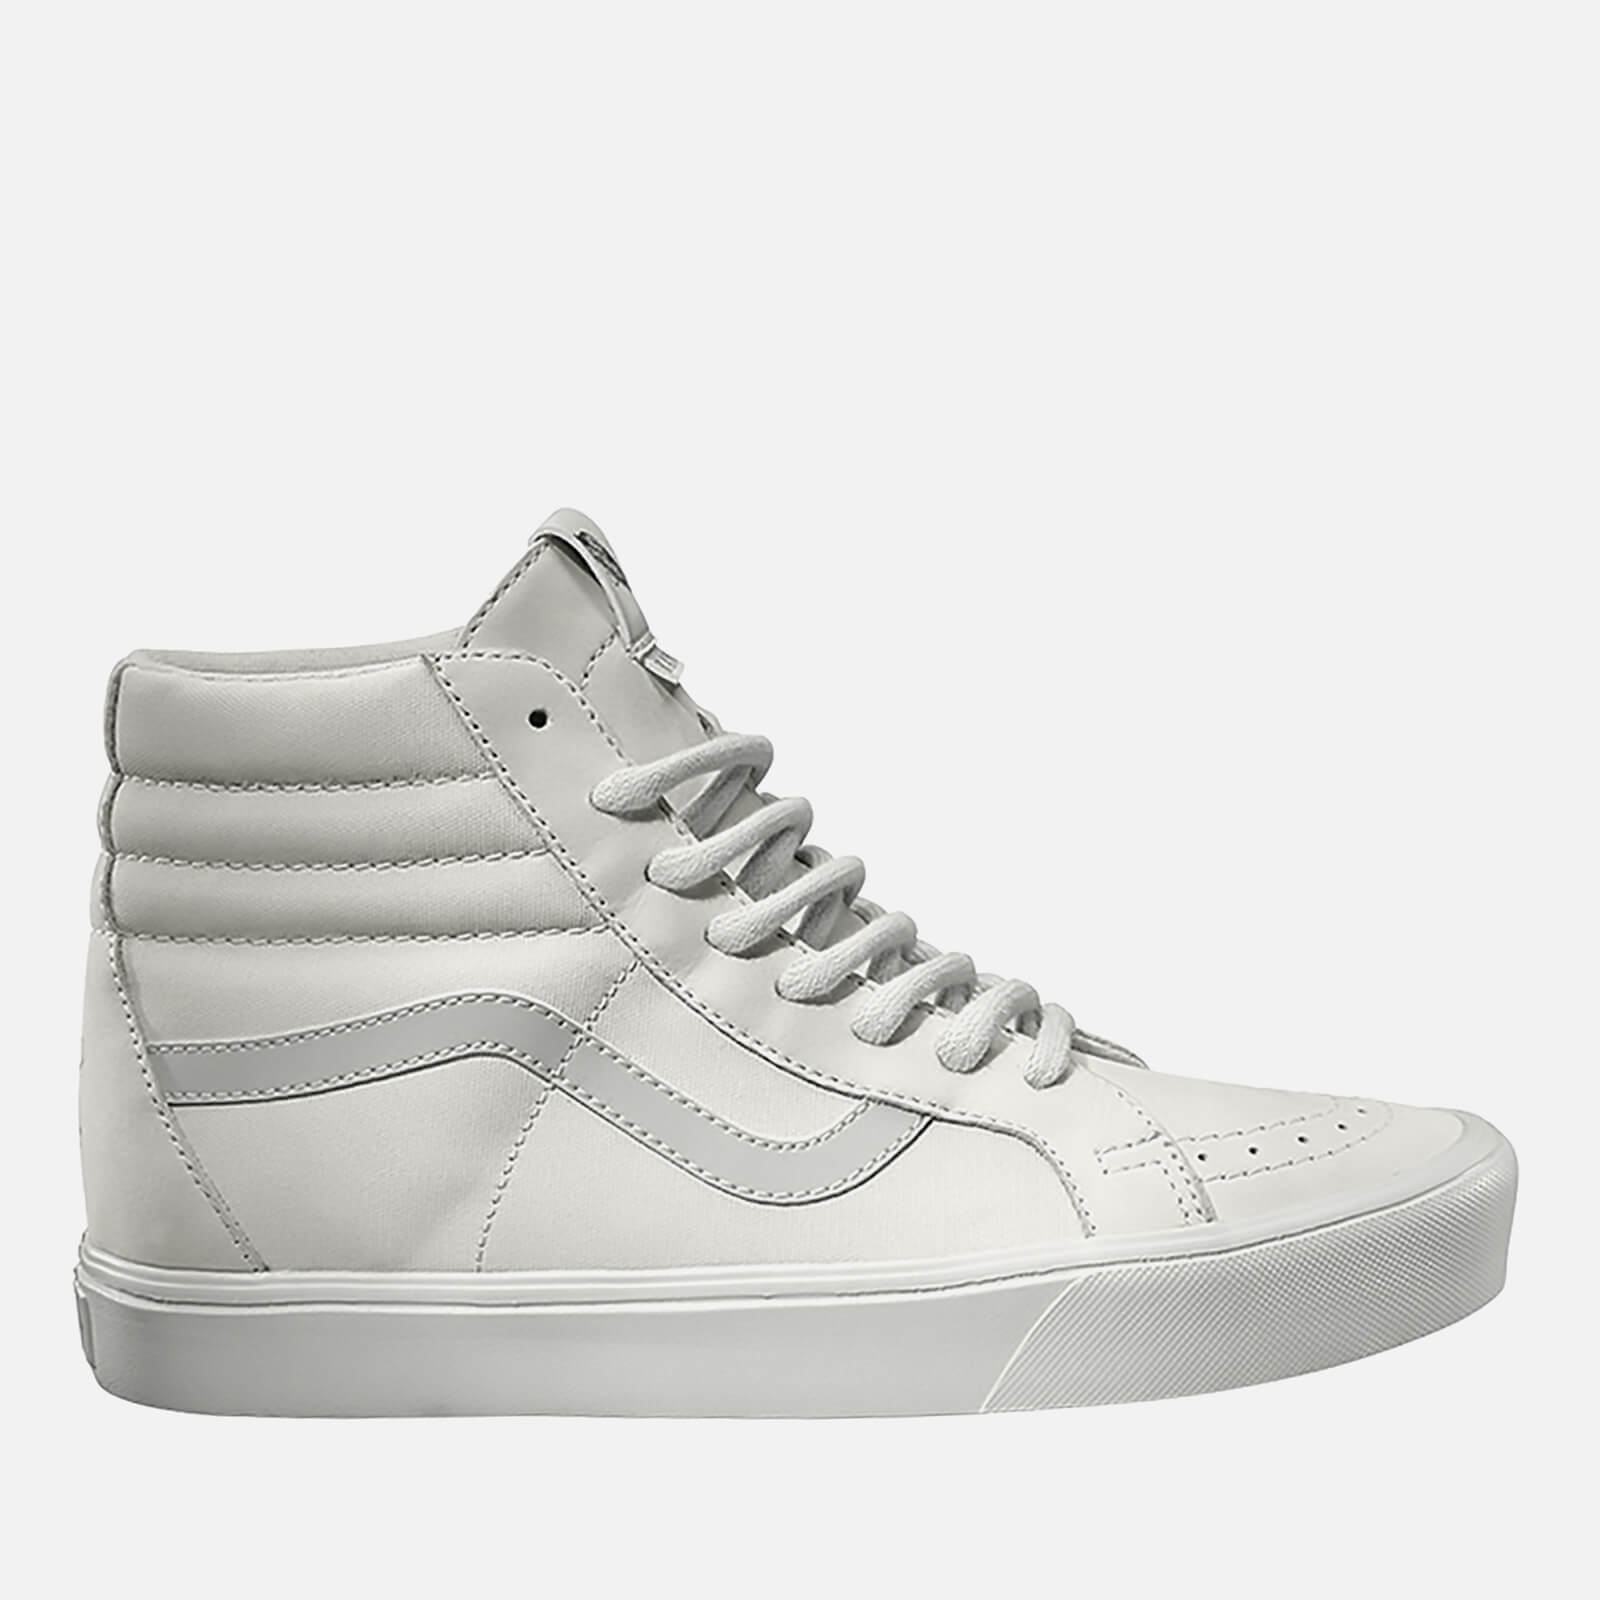 8722bbffcde2a2 Vans X Rains Men s Sk8-Hi Reissue Lite Trainers - Cloud - Free UK Delivery  over £50